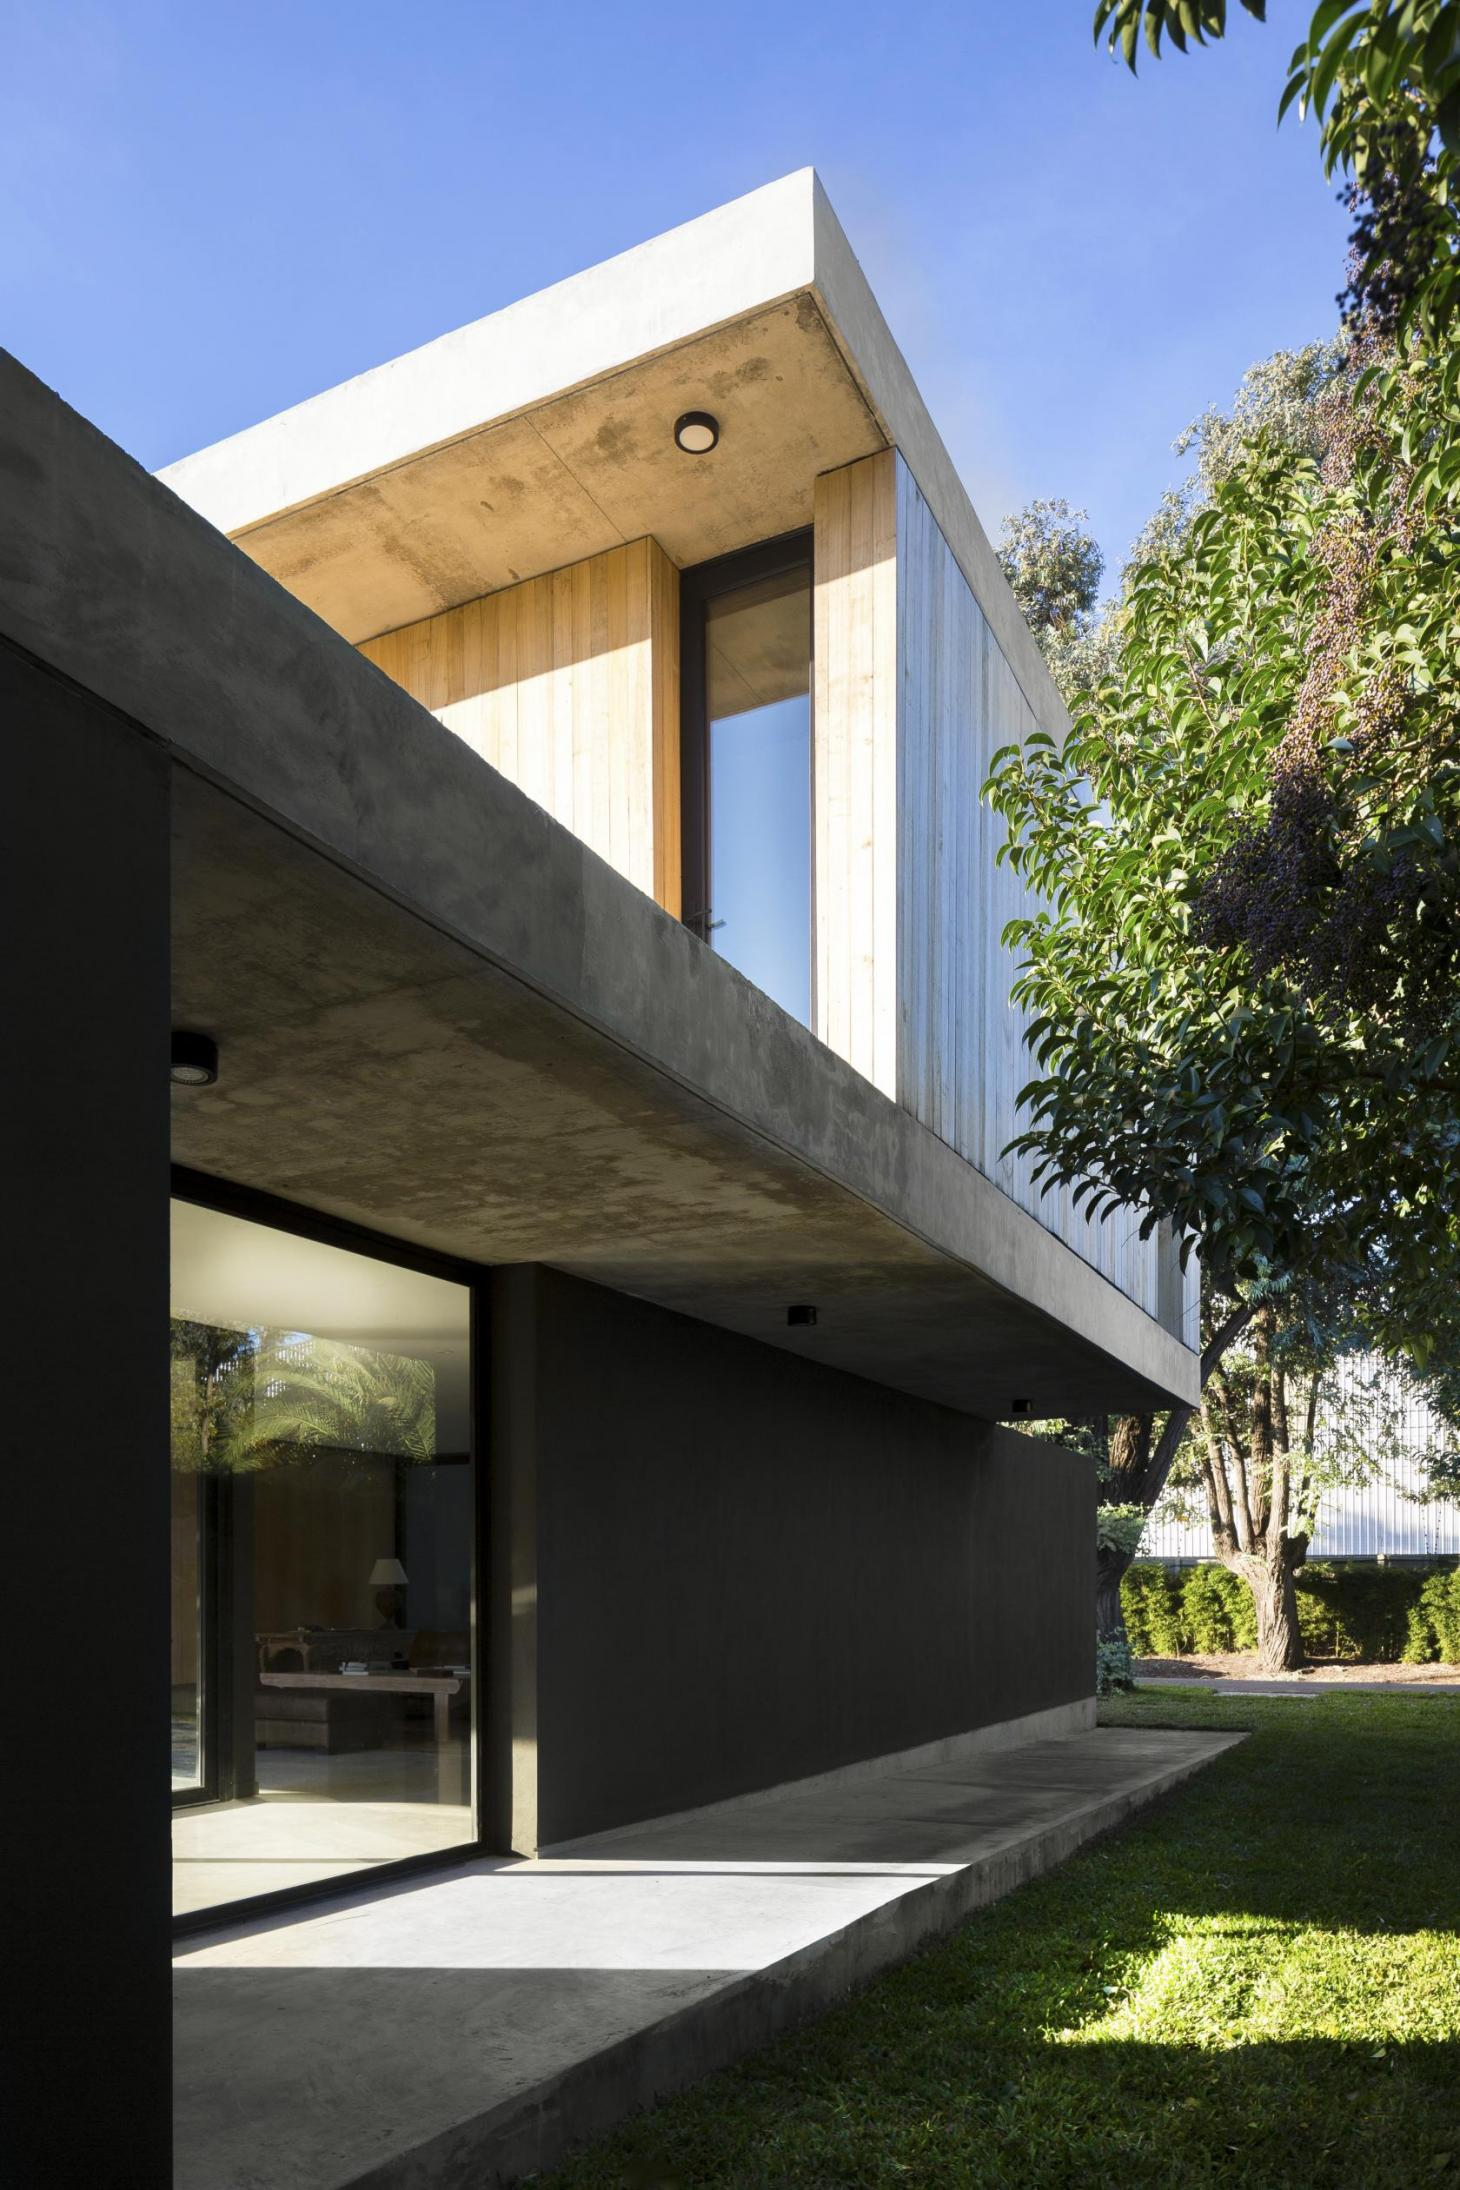 Casa MB designed by Colle-Croce